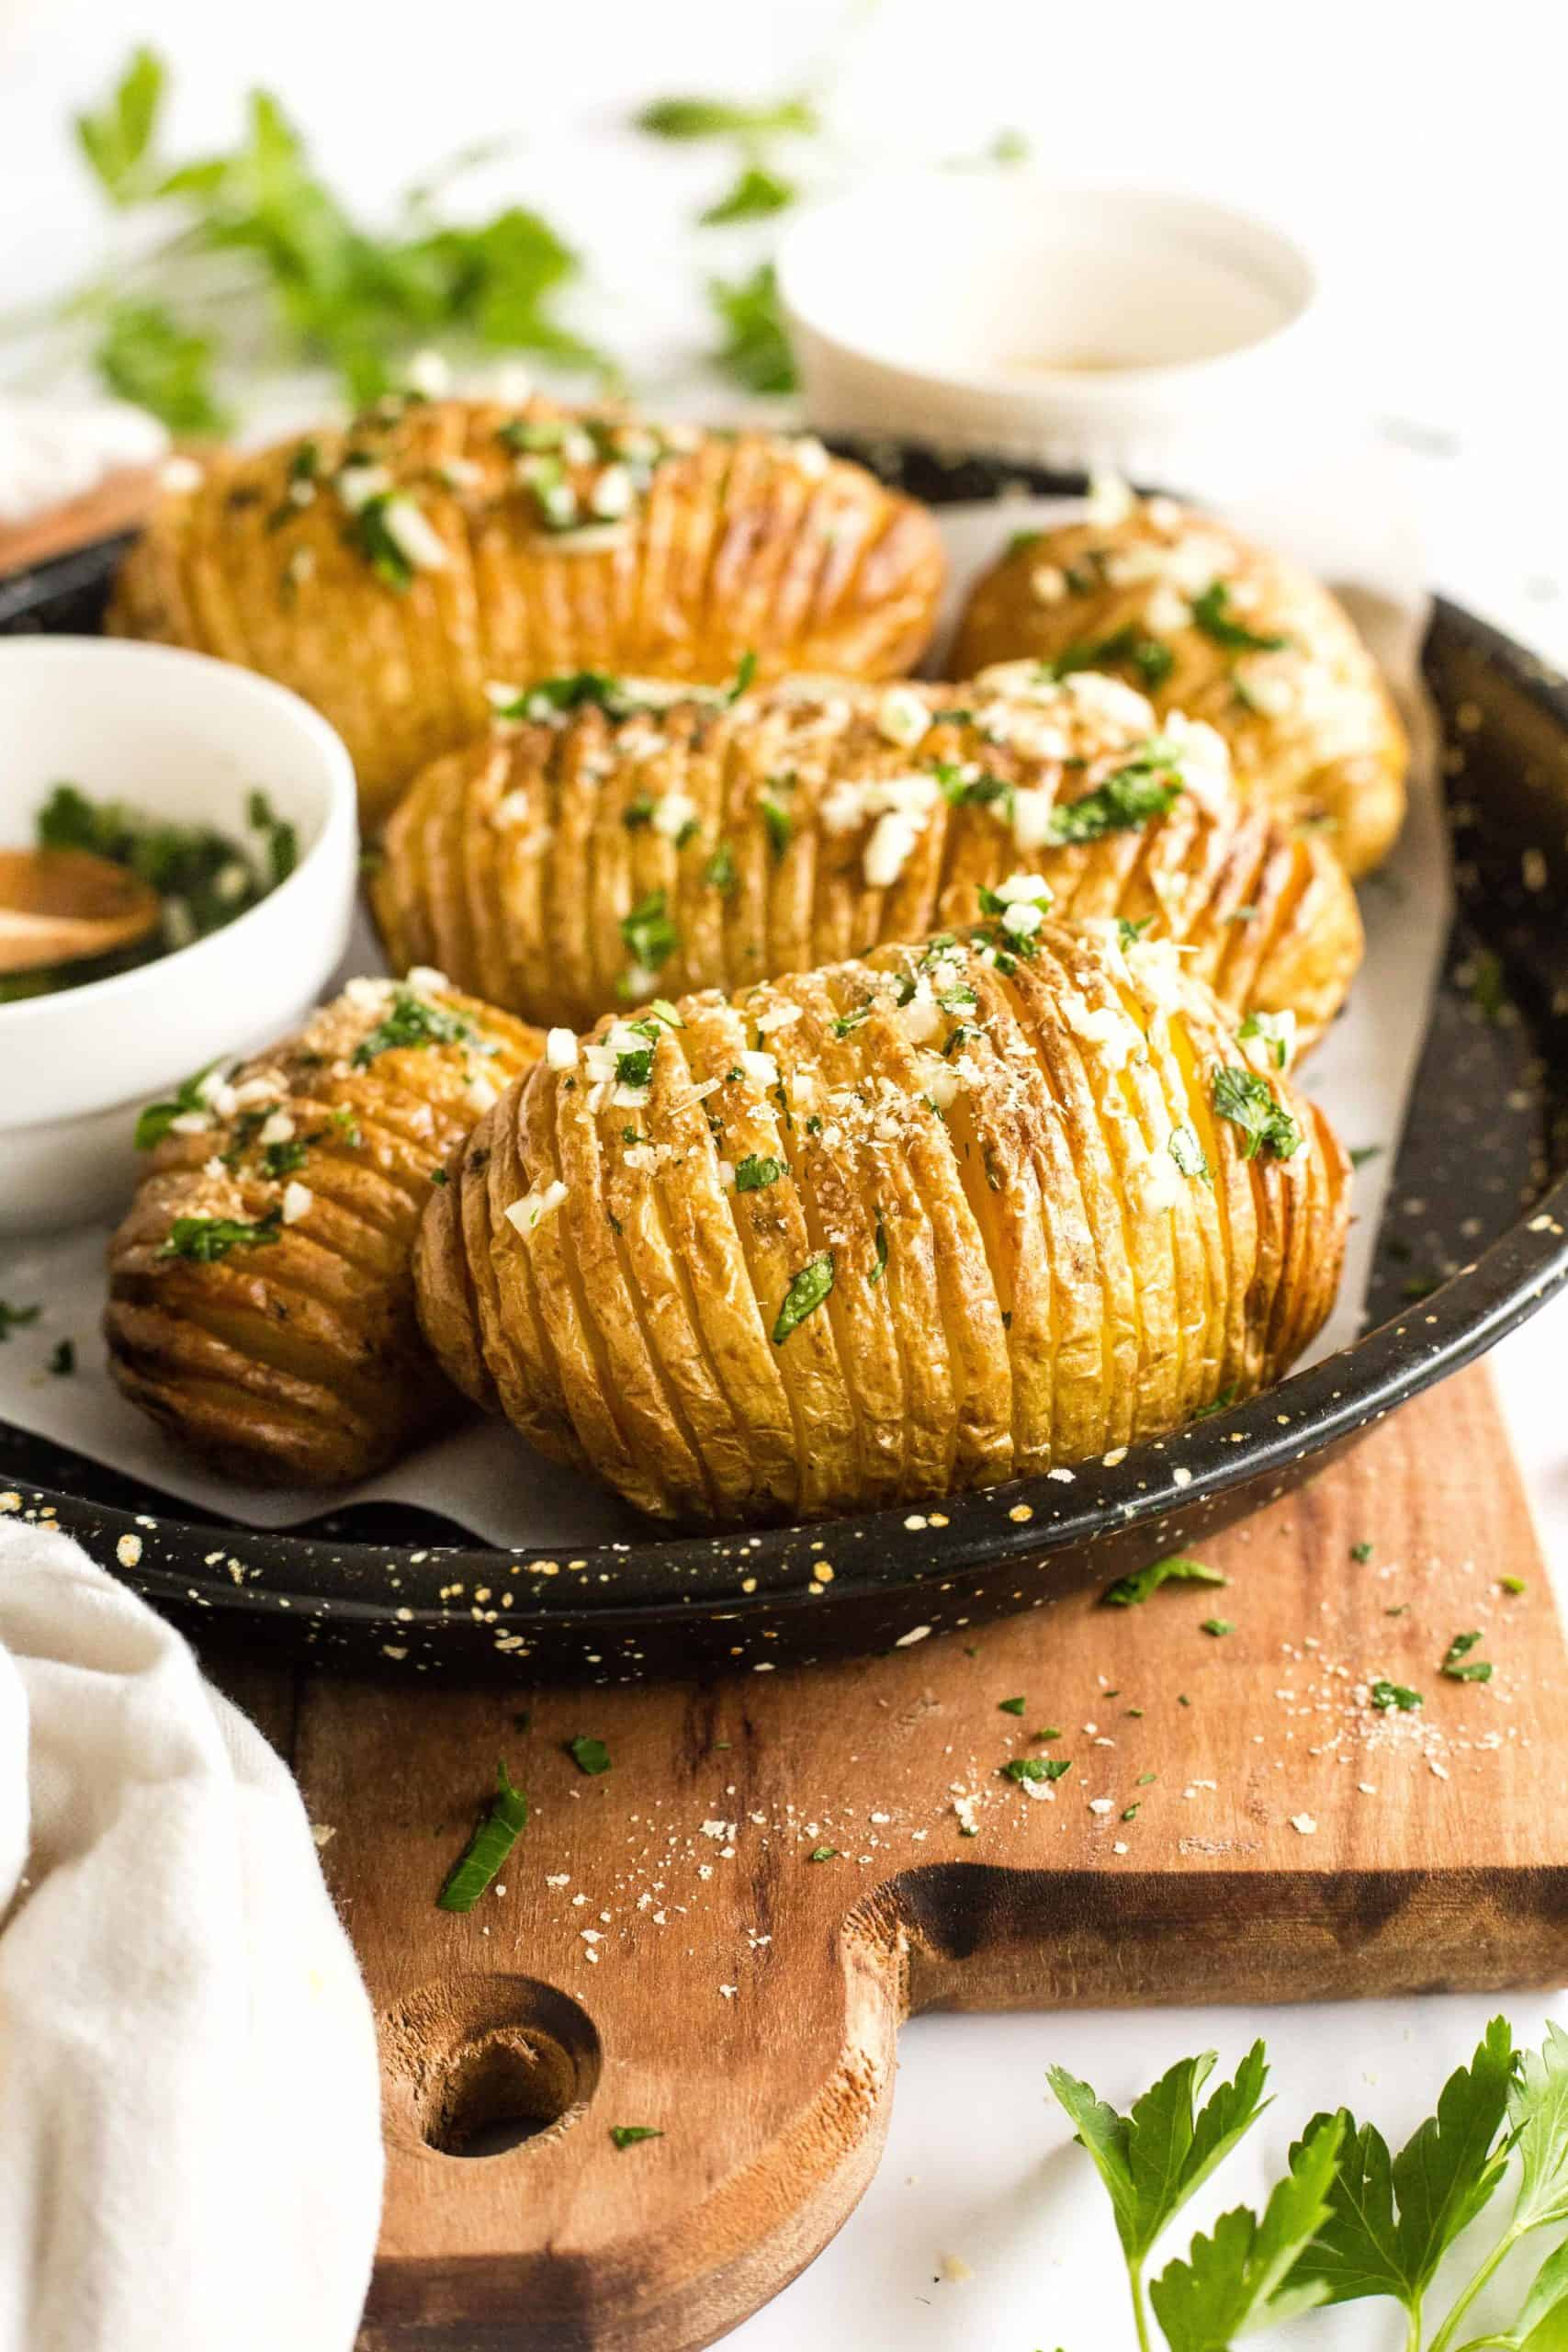 Hasselback potatoes garnished with minced garlic and fresh parsley on w baking sheet on top of a wooden board.